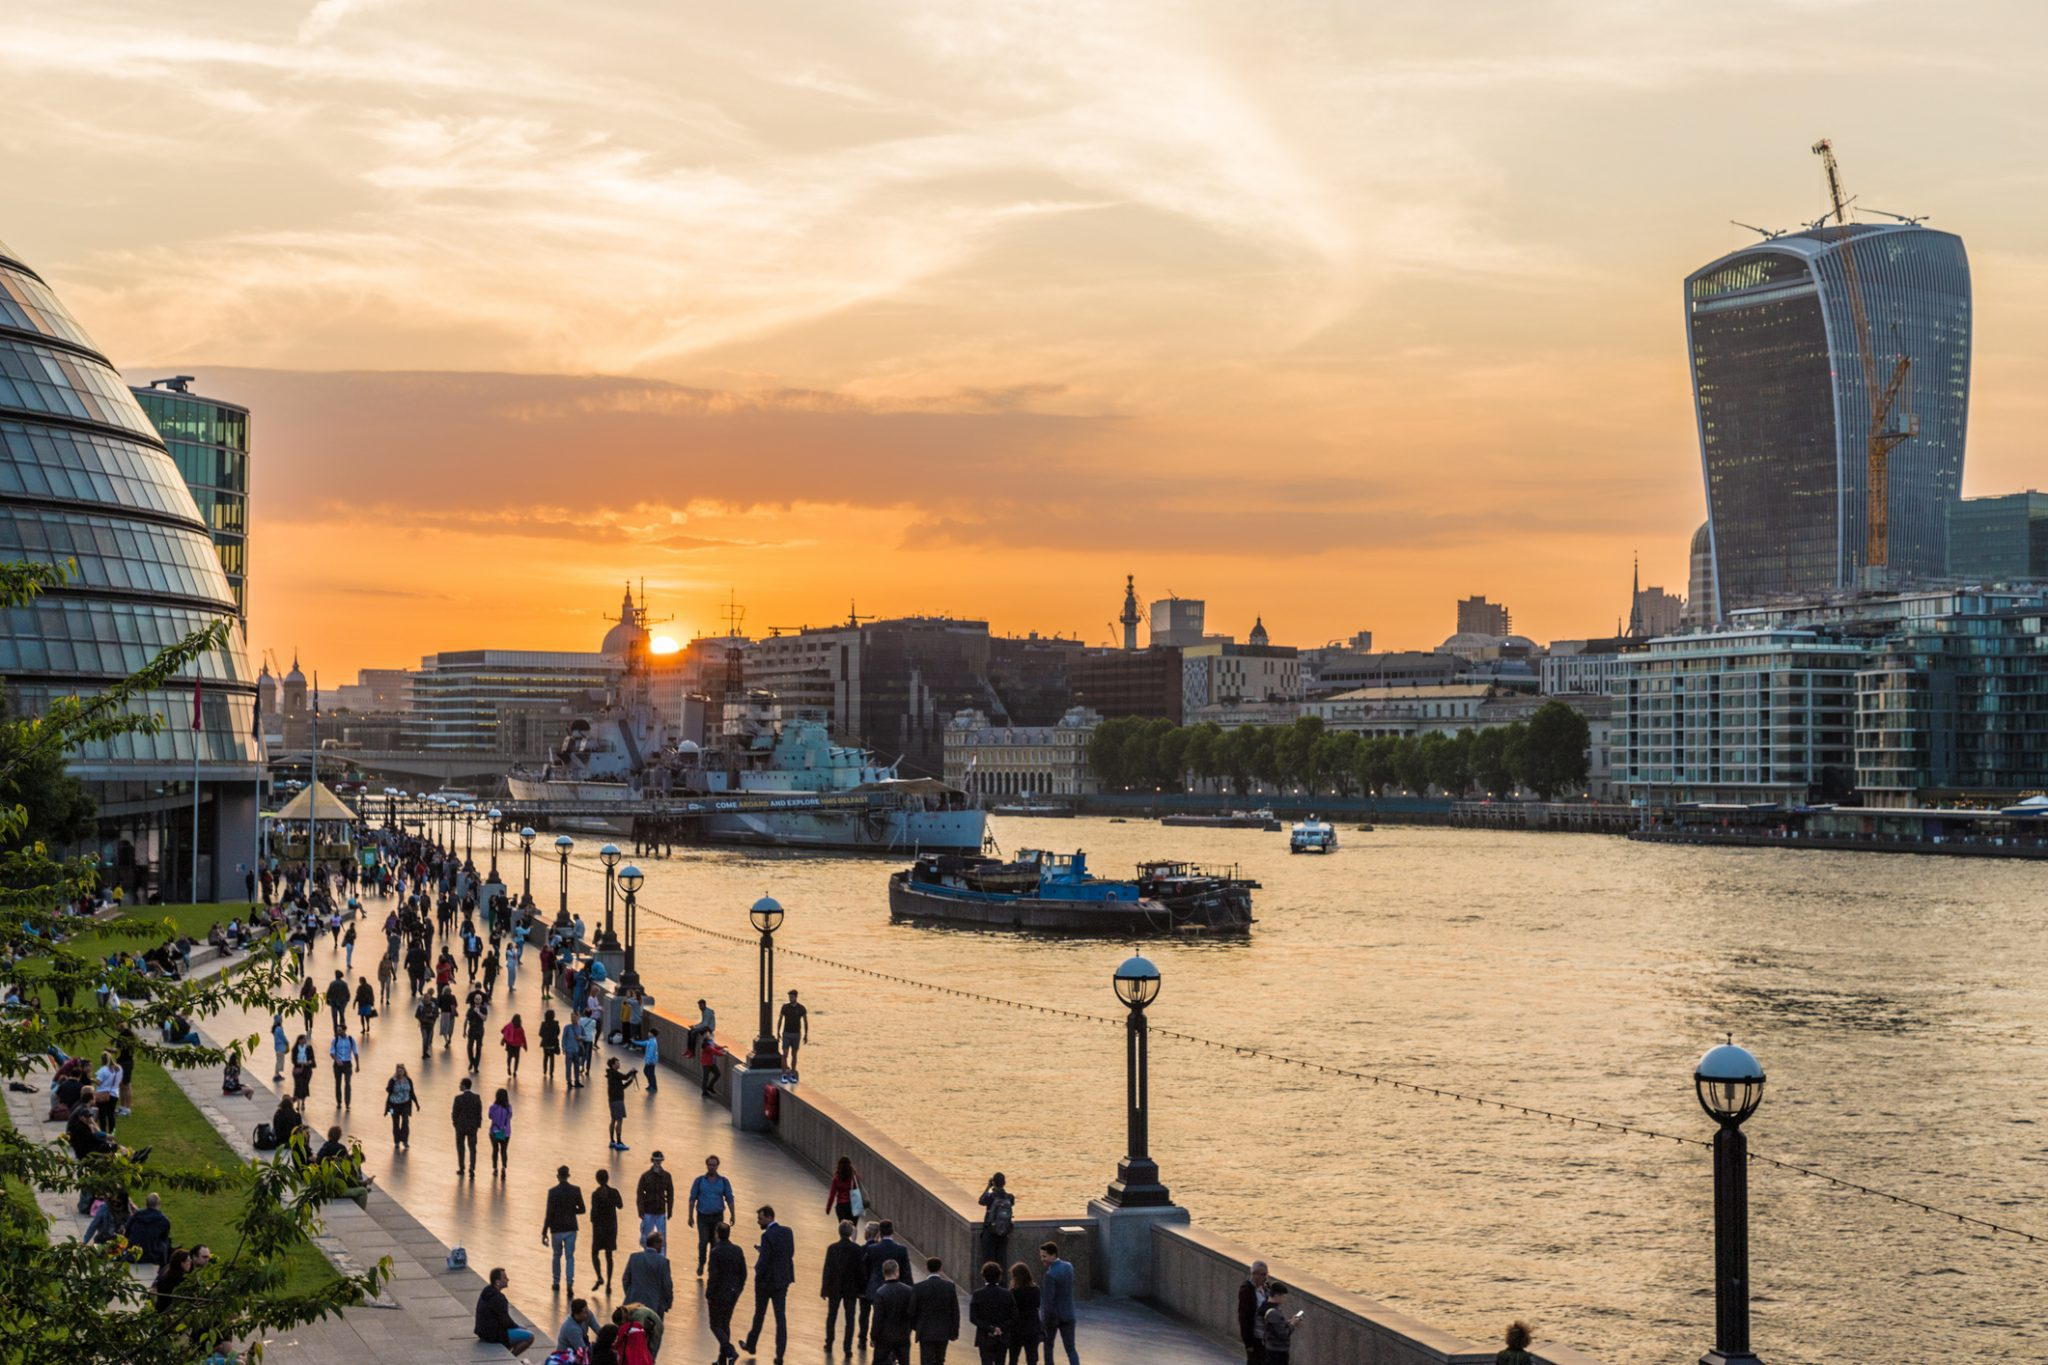 London named the second best city for property investment in Europe